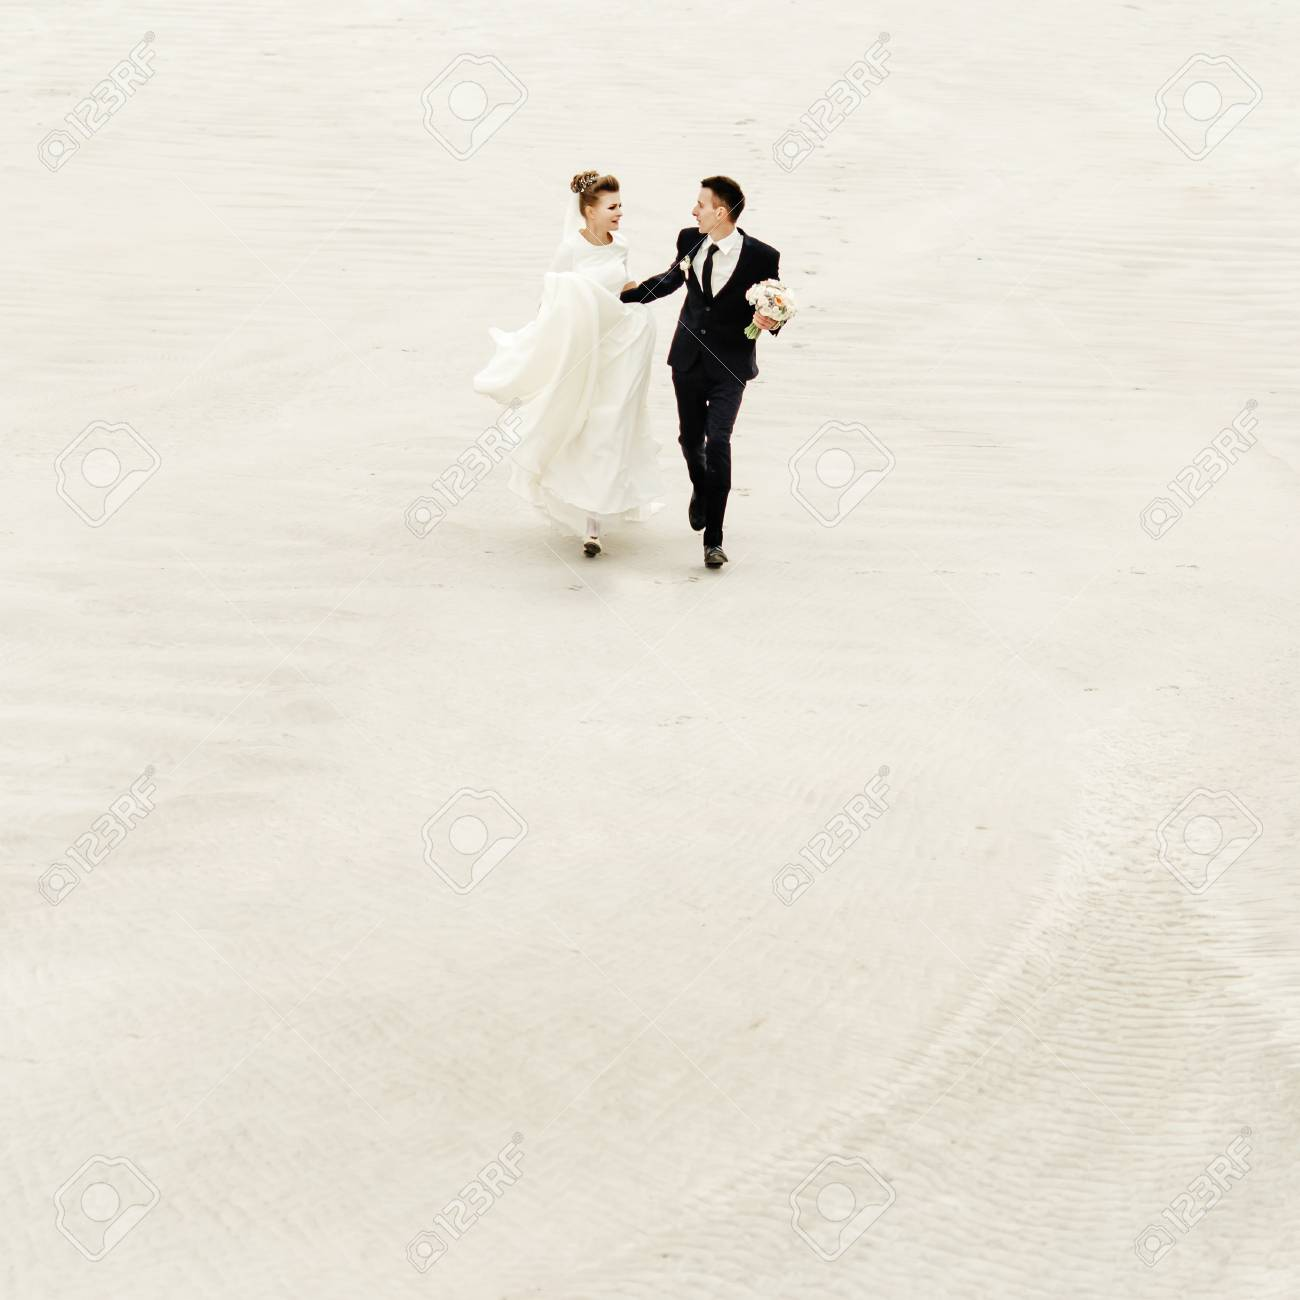 Peachy Happy Bride And Groom Running And Having Fun At Sandy Beach Lake Download Free Architecture Designs Scobabritishbridgeorg